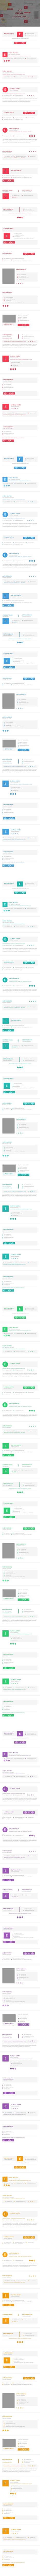 PSD Email Signature. Wedding Fonts. $3.00